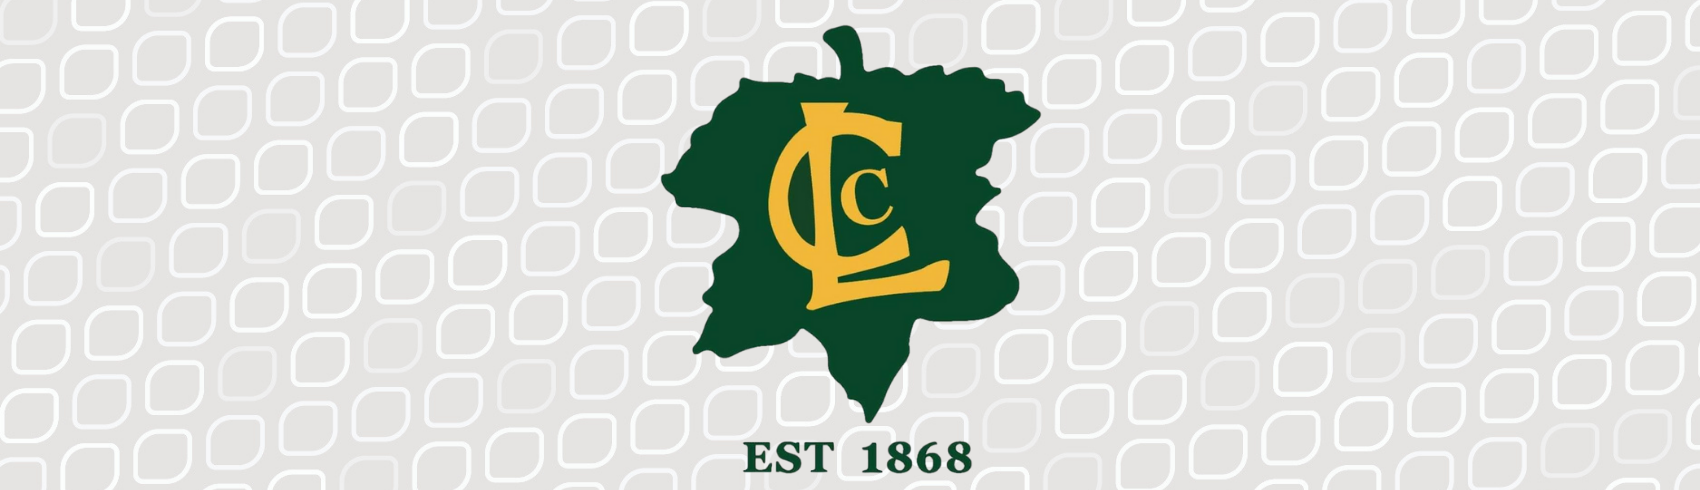 lcc-banner.png